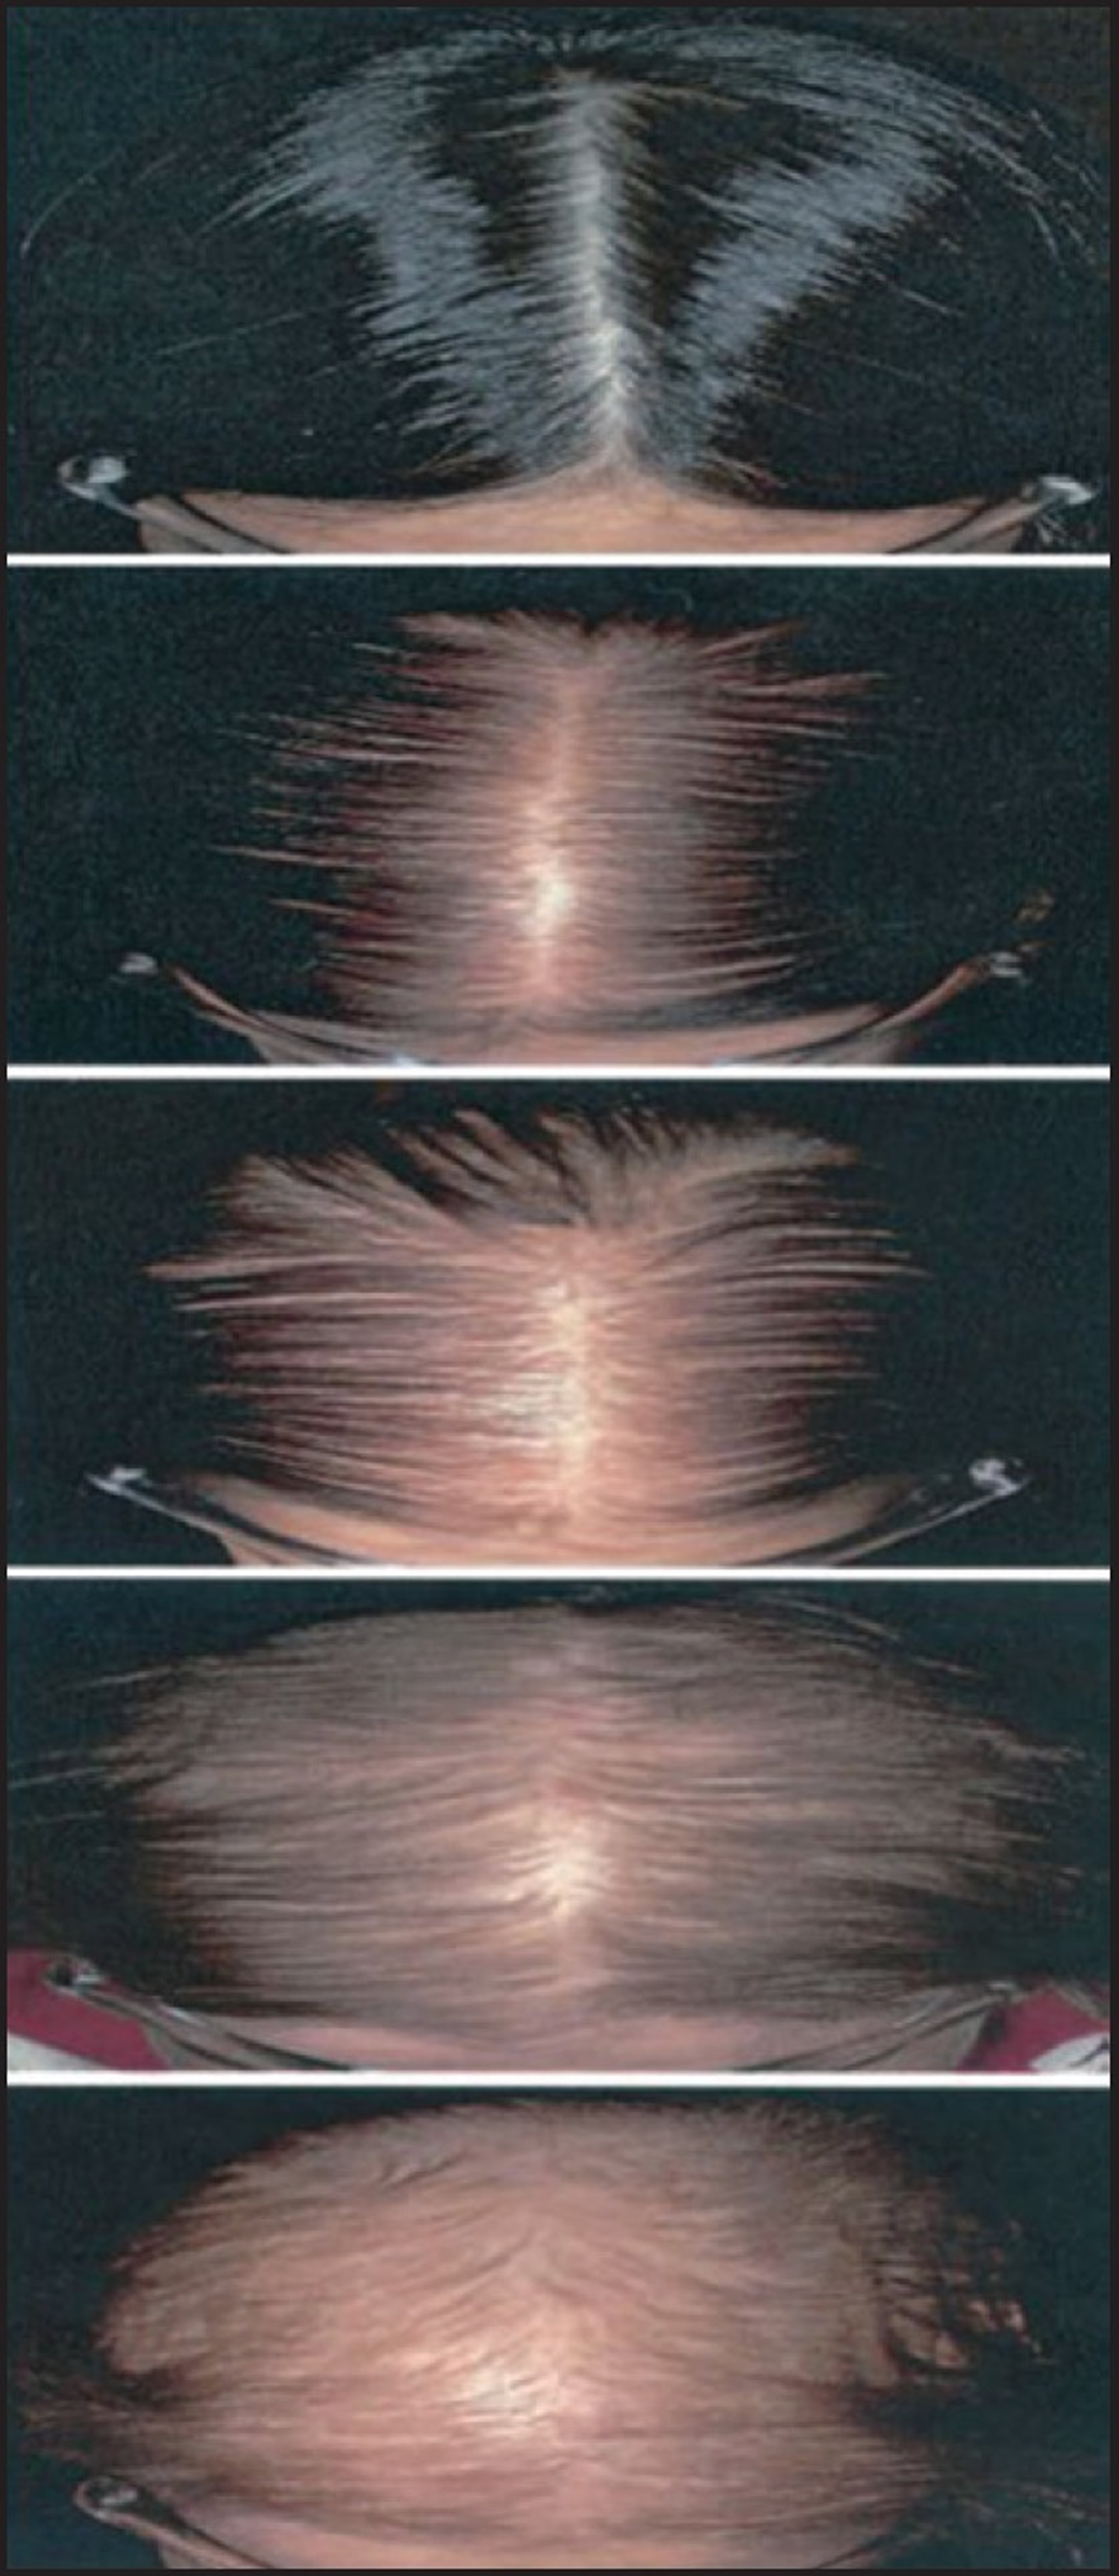 Sinclair self-reporting photographic measure of female pattern of hair loss